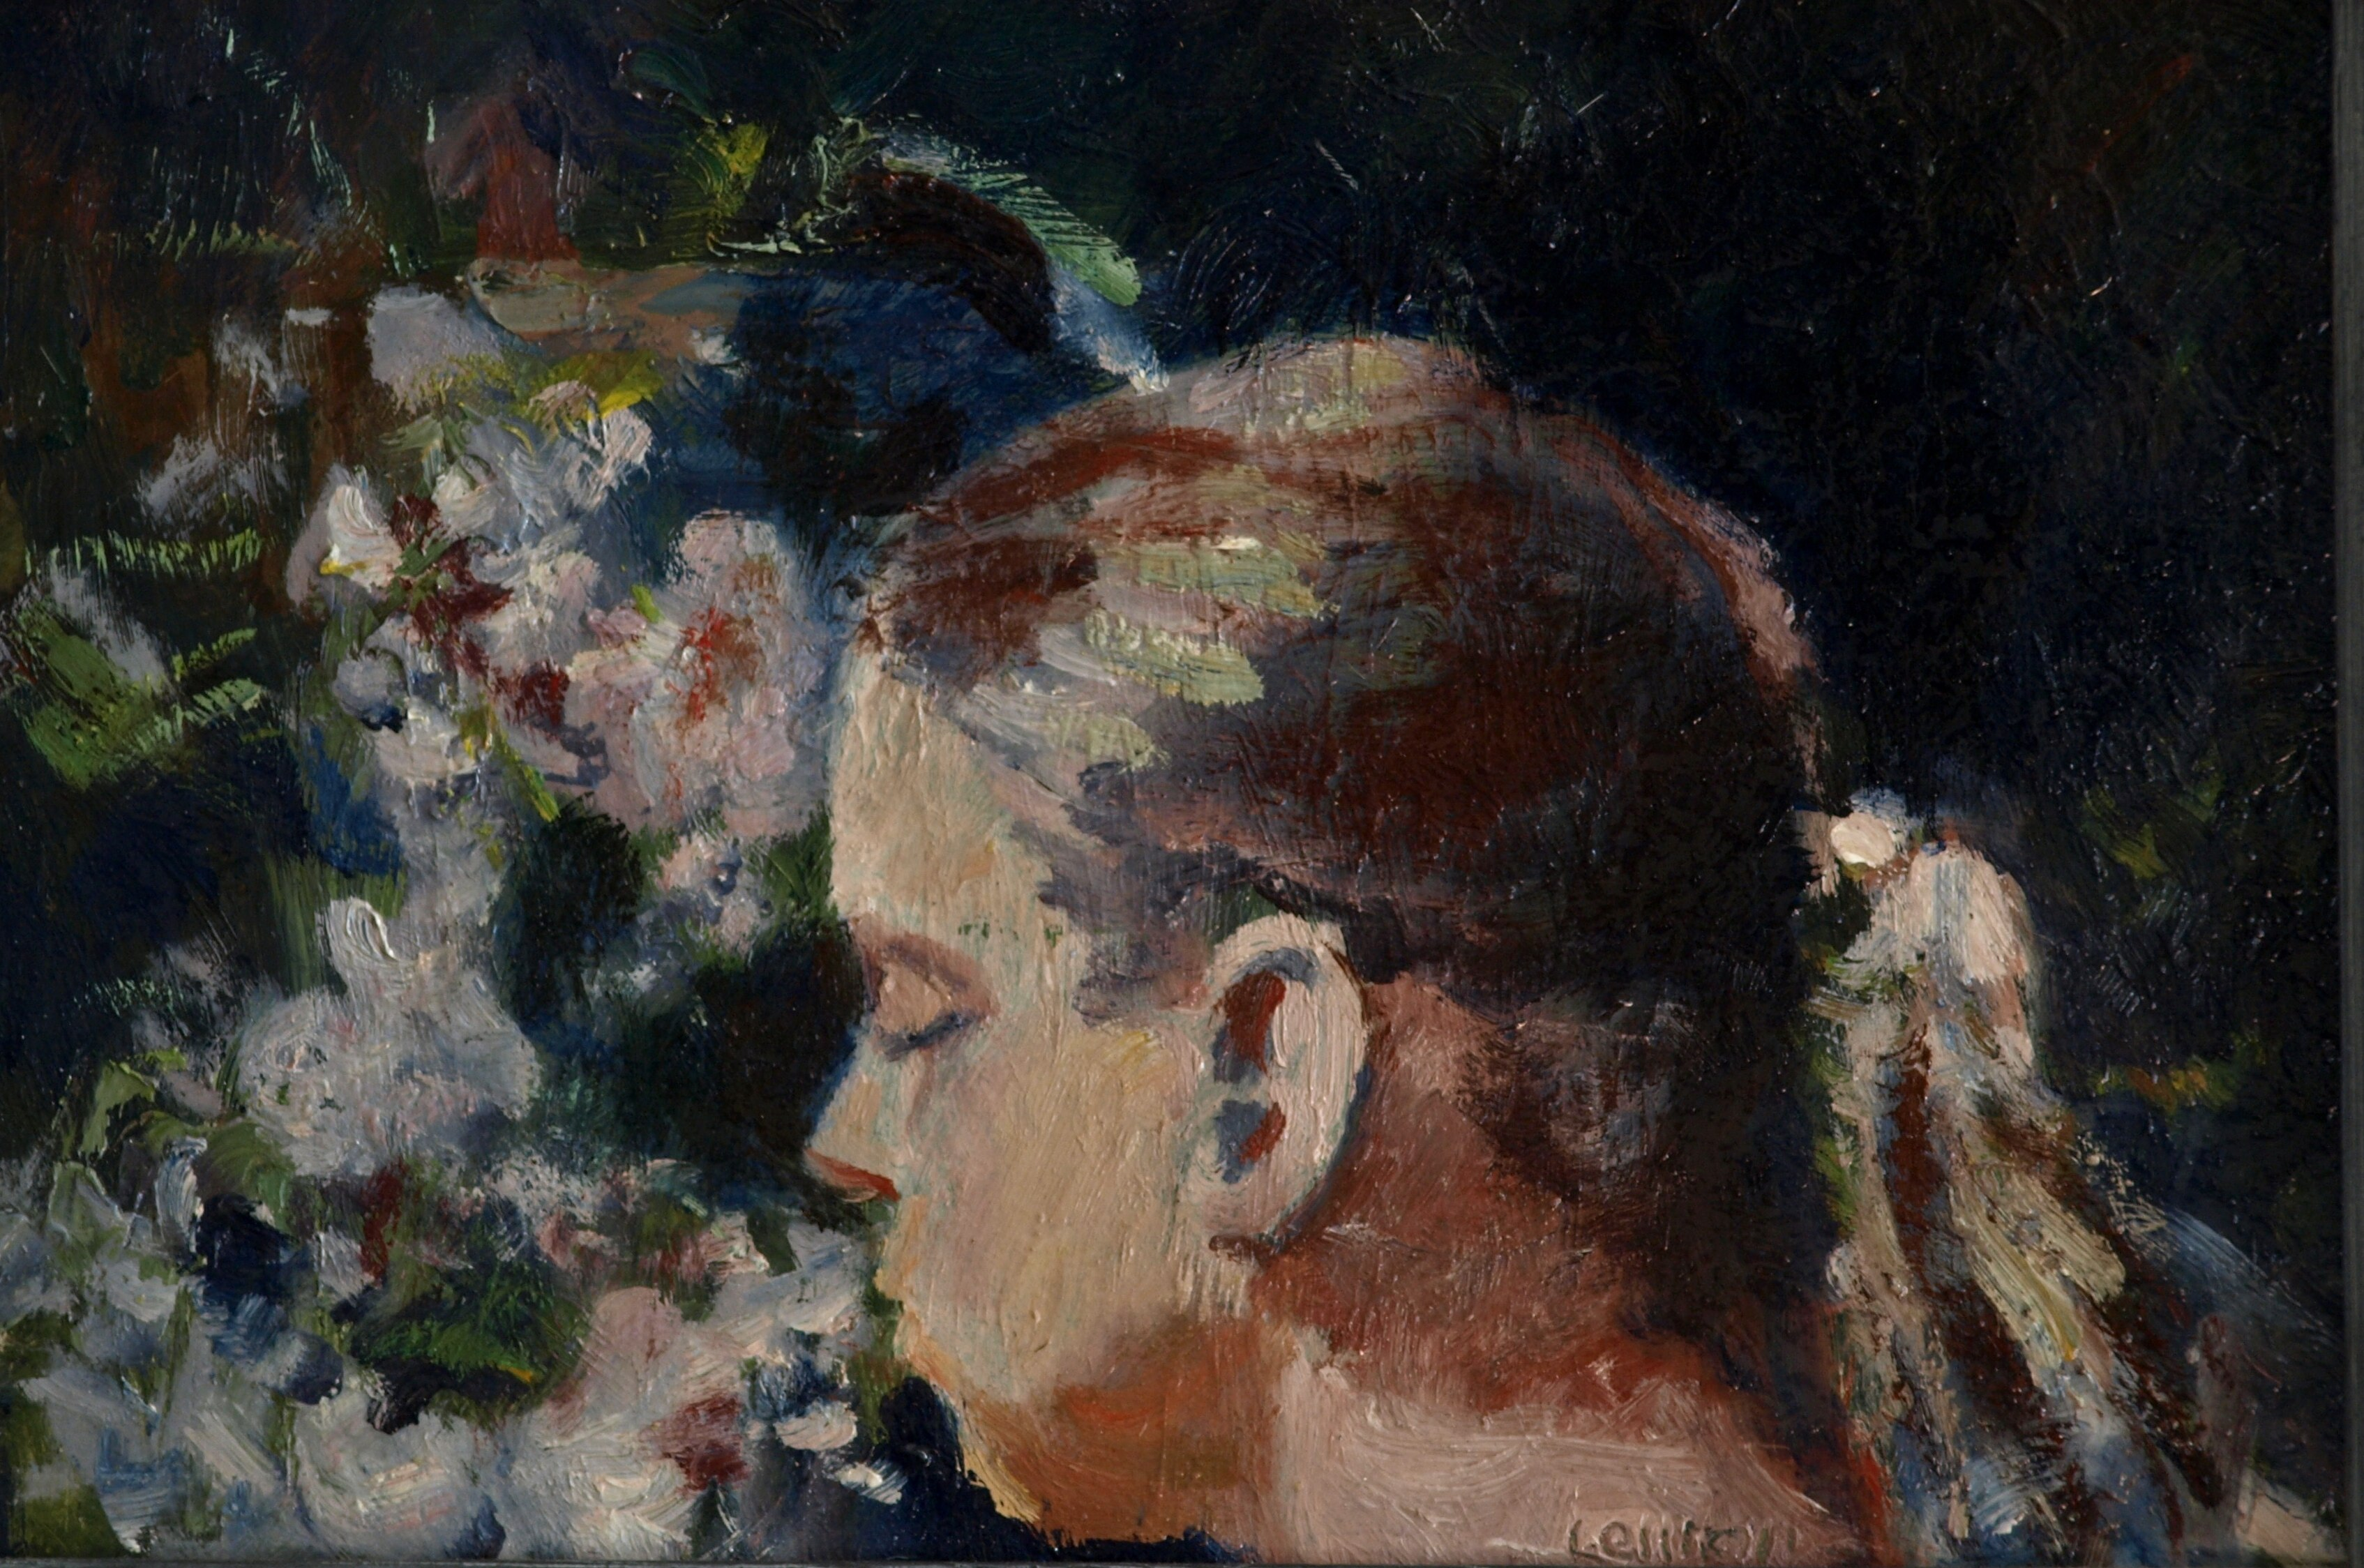 Sue with Flowers, Oil on Panel, 8 x 12 Inches, by Bernard Lennon, $225